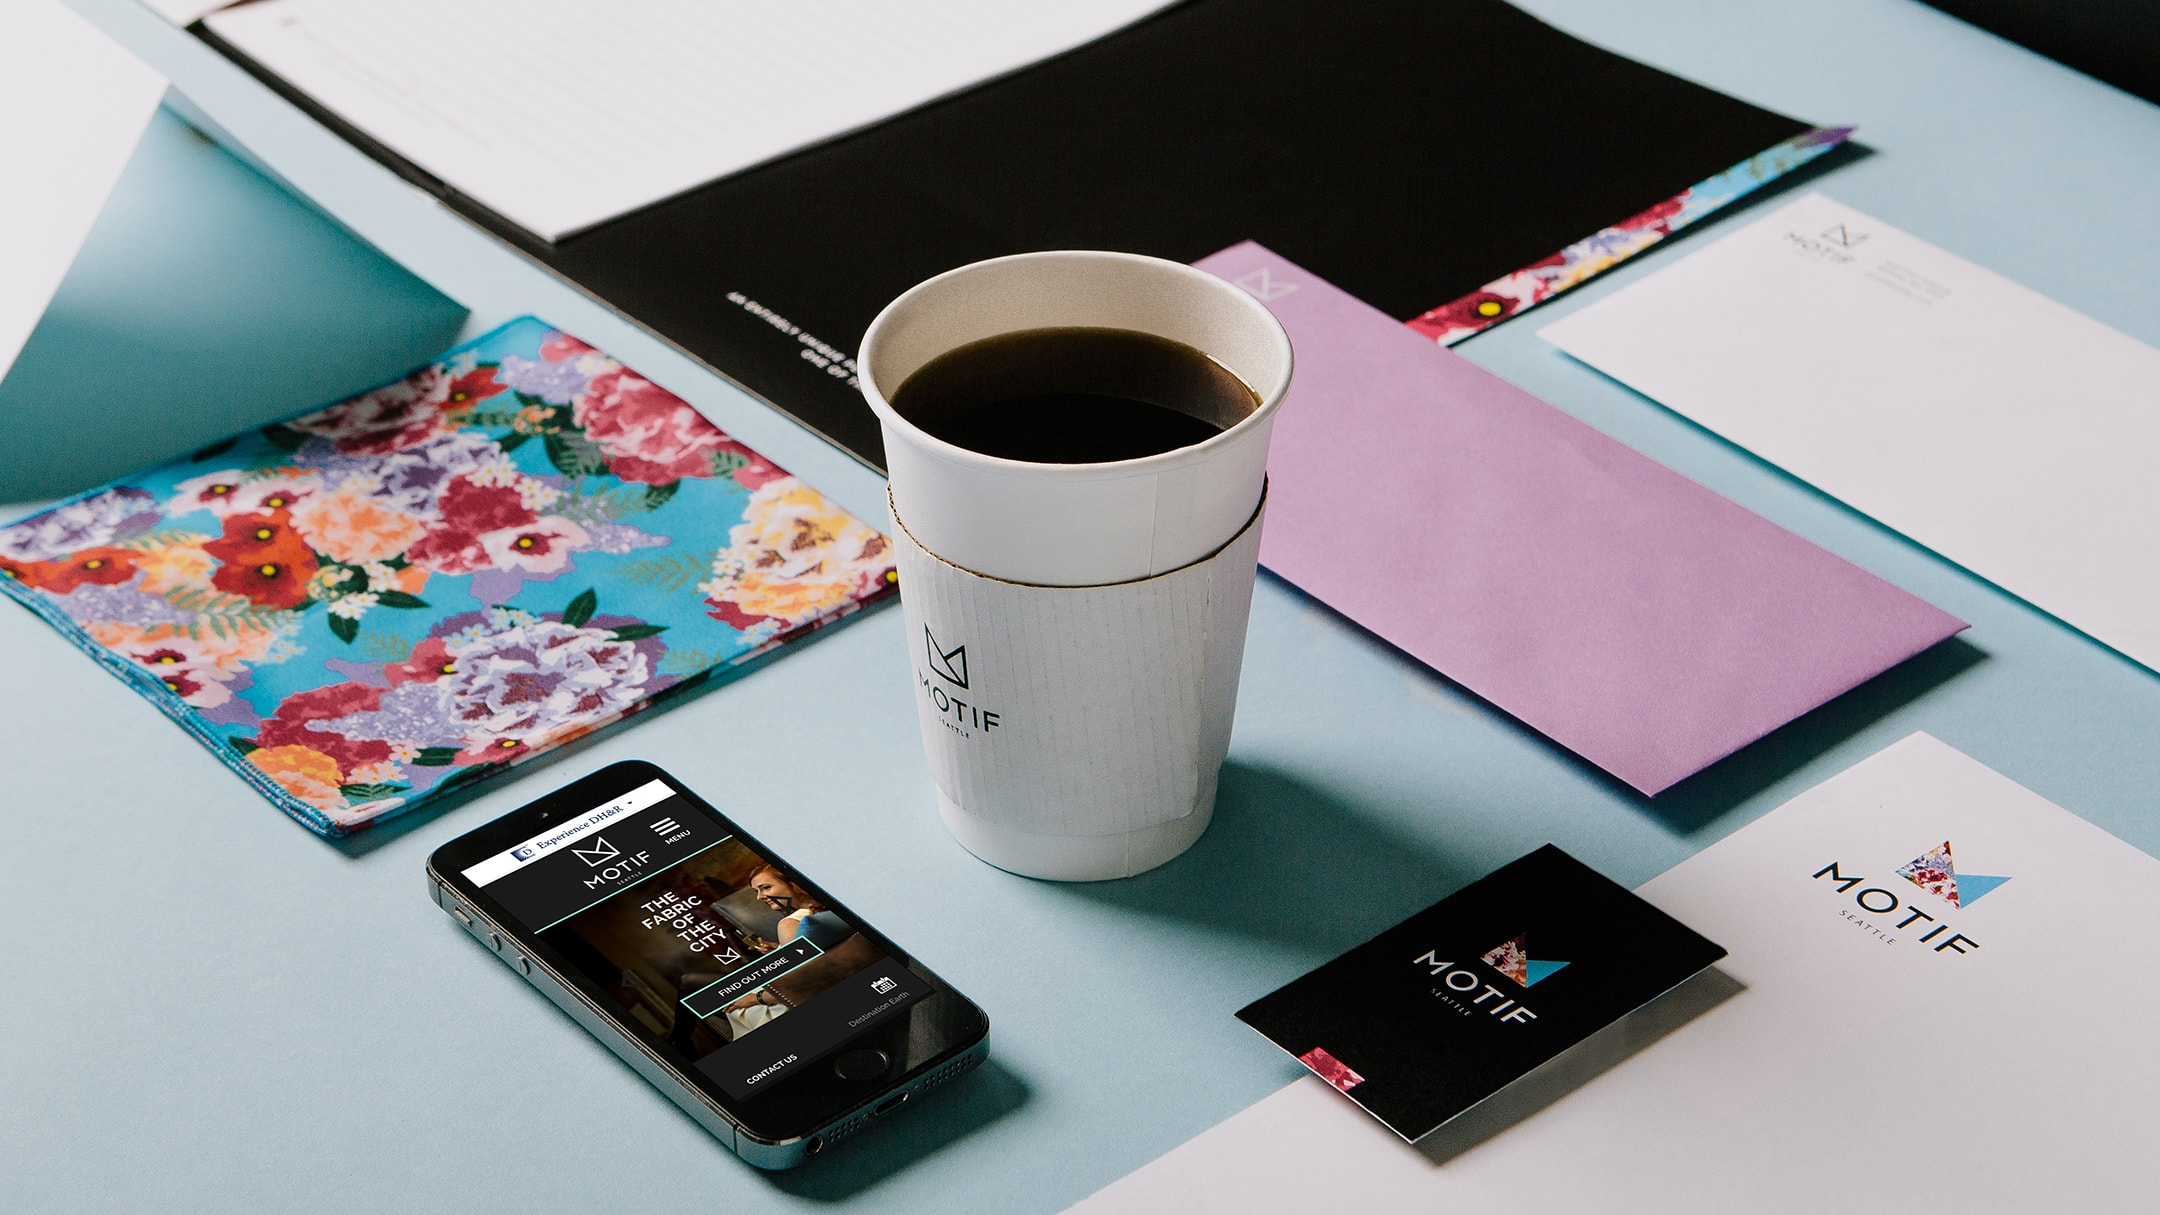 Motif Seattle collateral, iPhone app, and branded coffee cup